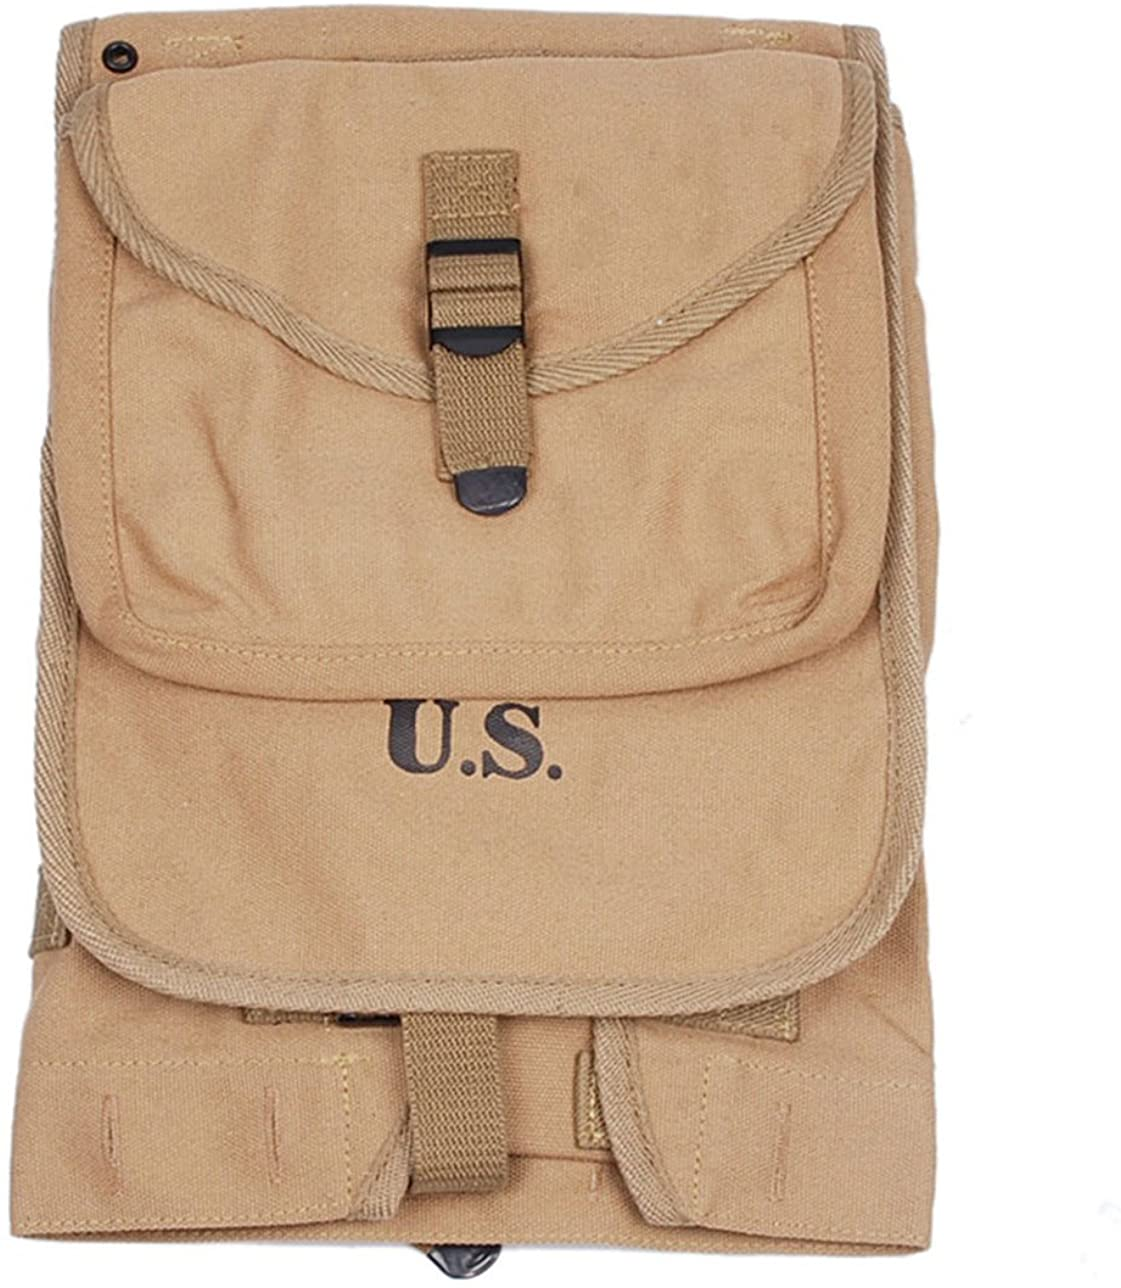 Heerpoint Reproduction Ww2 WWII Us Army M1928 Tactical Haversack Rucksack Knapsack Backpacks Canvas (Khaki)